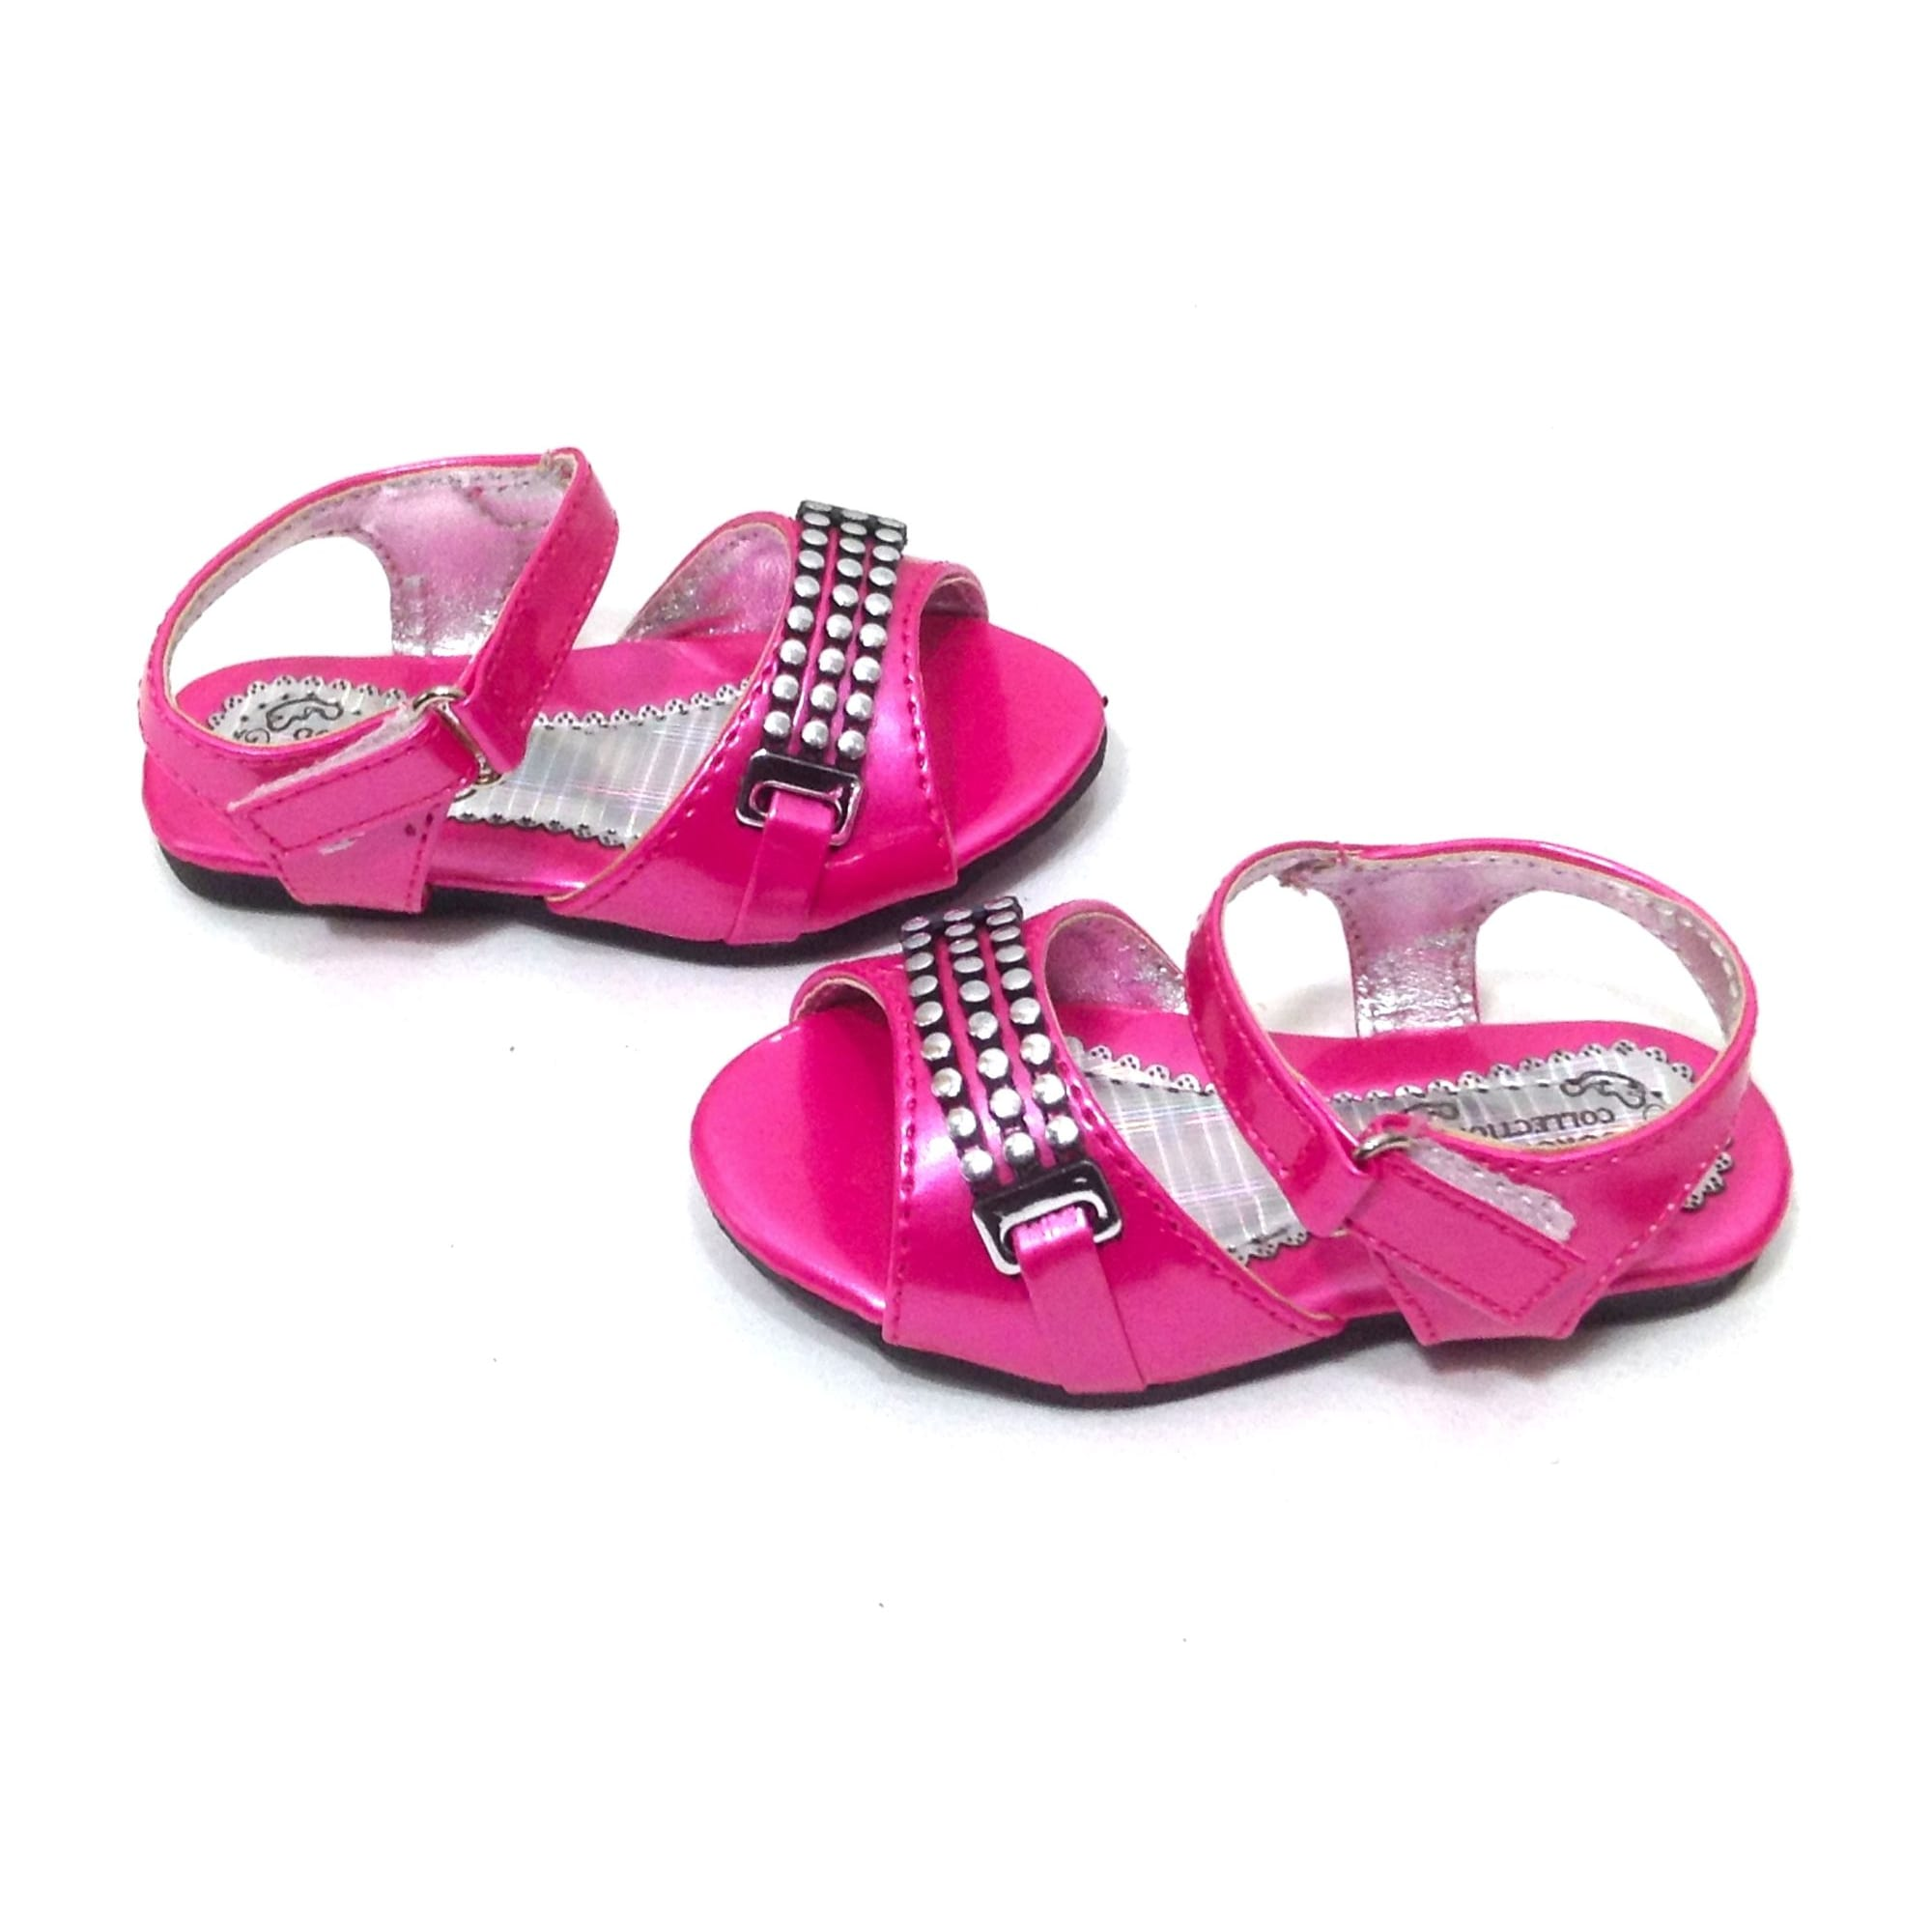 Sandals GORGEOUS COLLECTIONS Pink, fuchsia, light pink